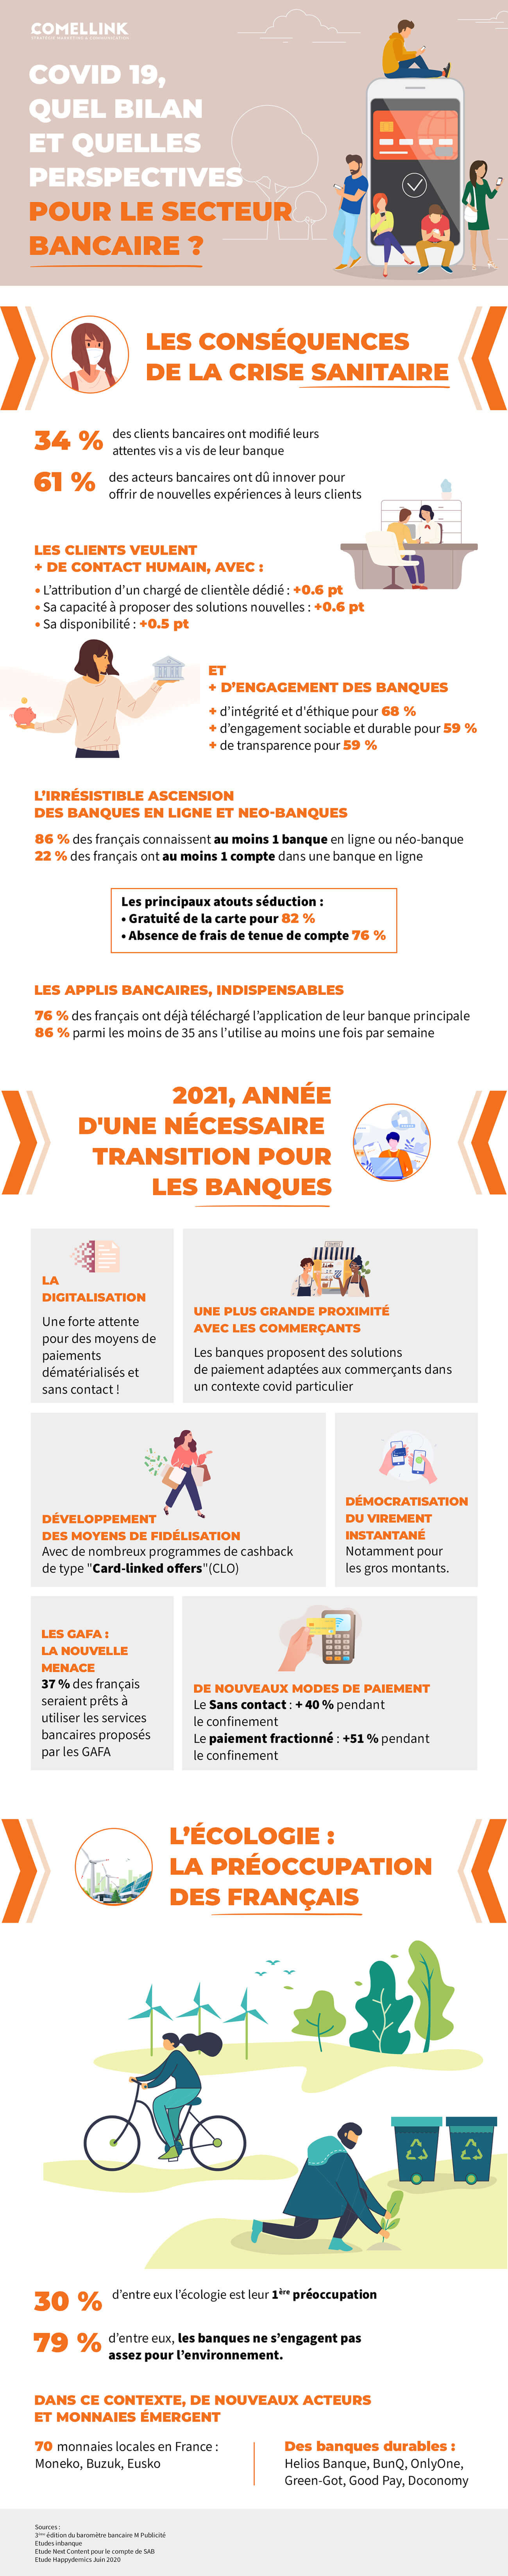 Infographie banque